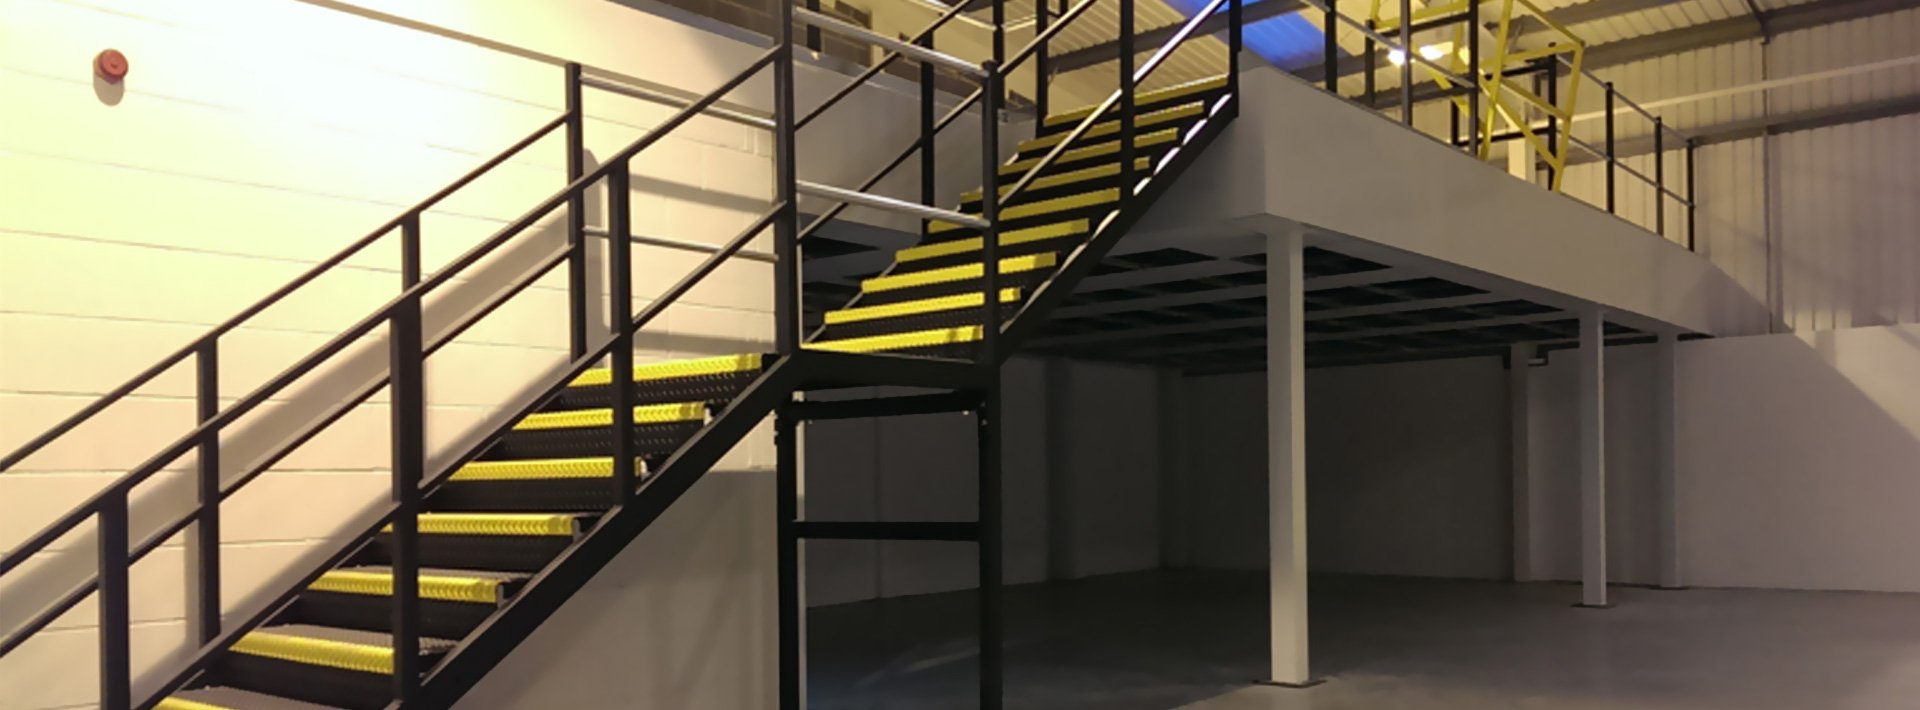 Mezzanine Floors Services : Mezzanine floor construction racking shelving ltd